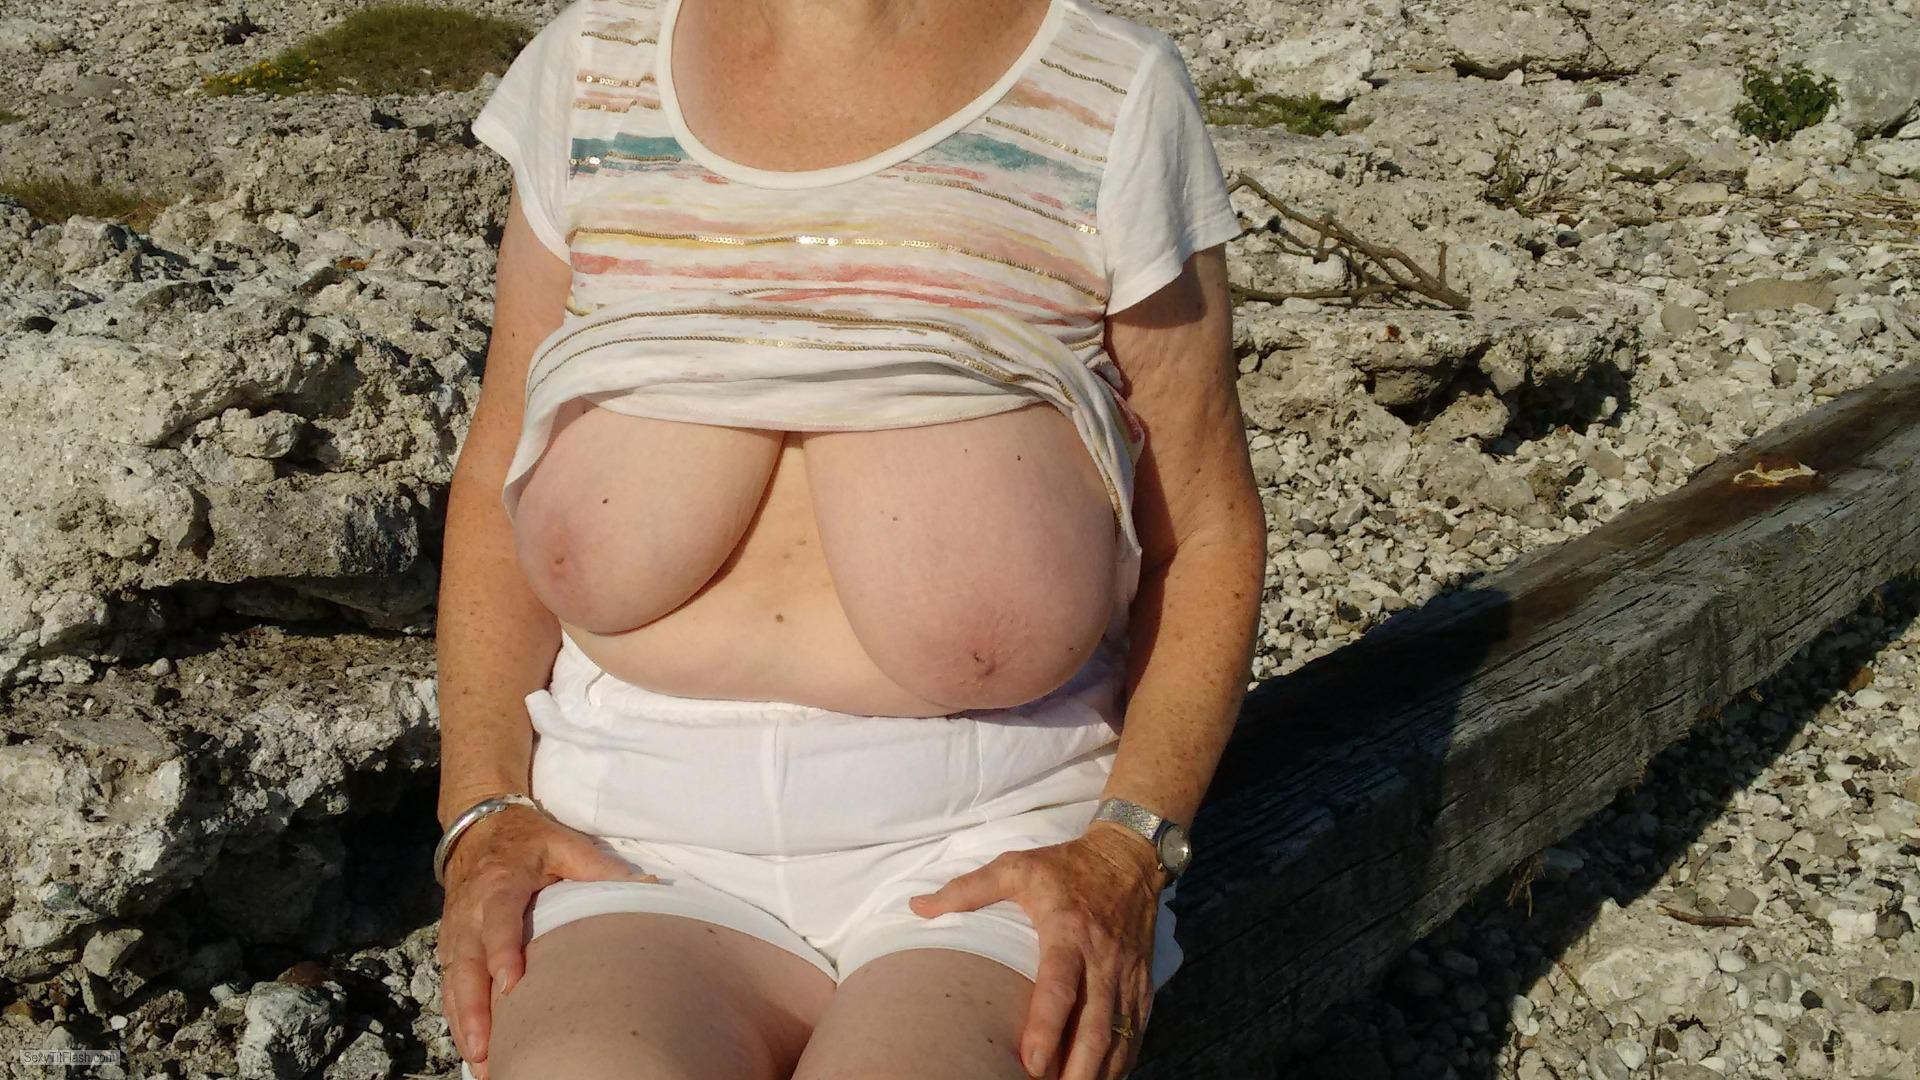 Tit Flash: Wife's Very Big Tits - Peggy from United Kingdom